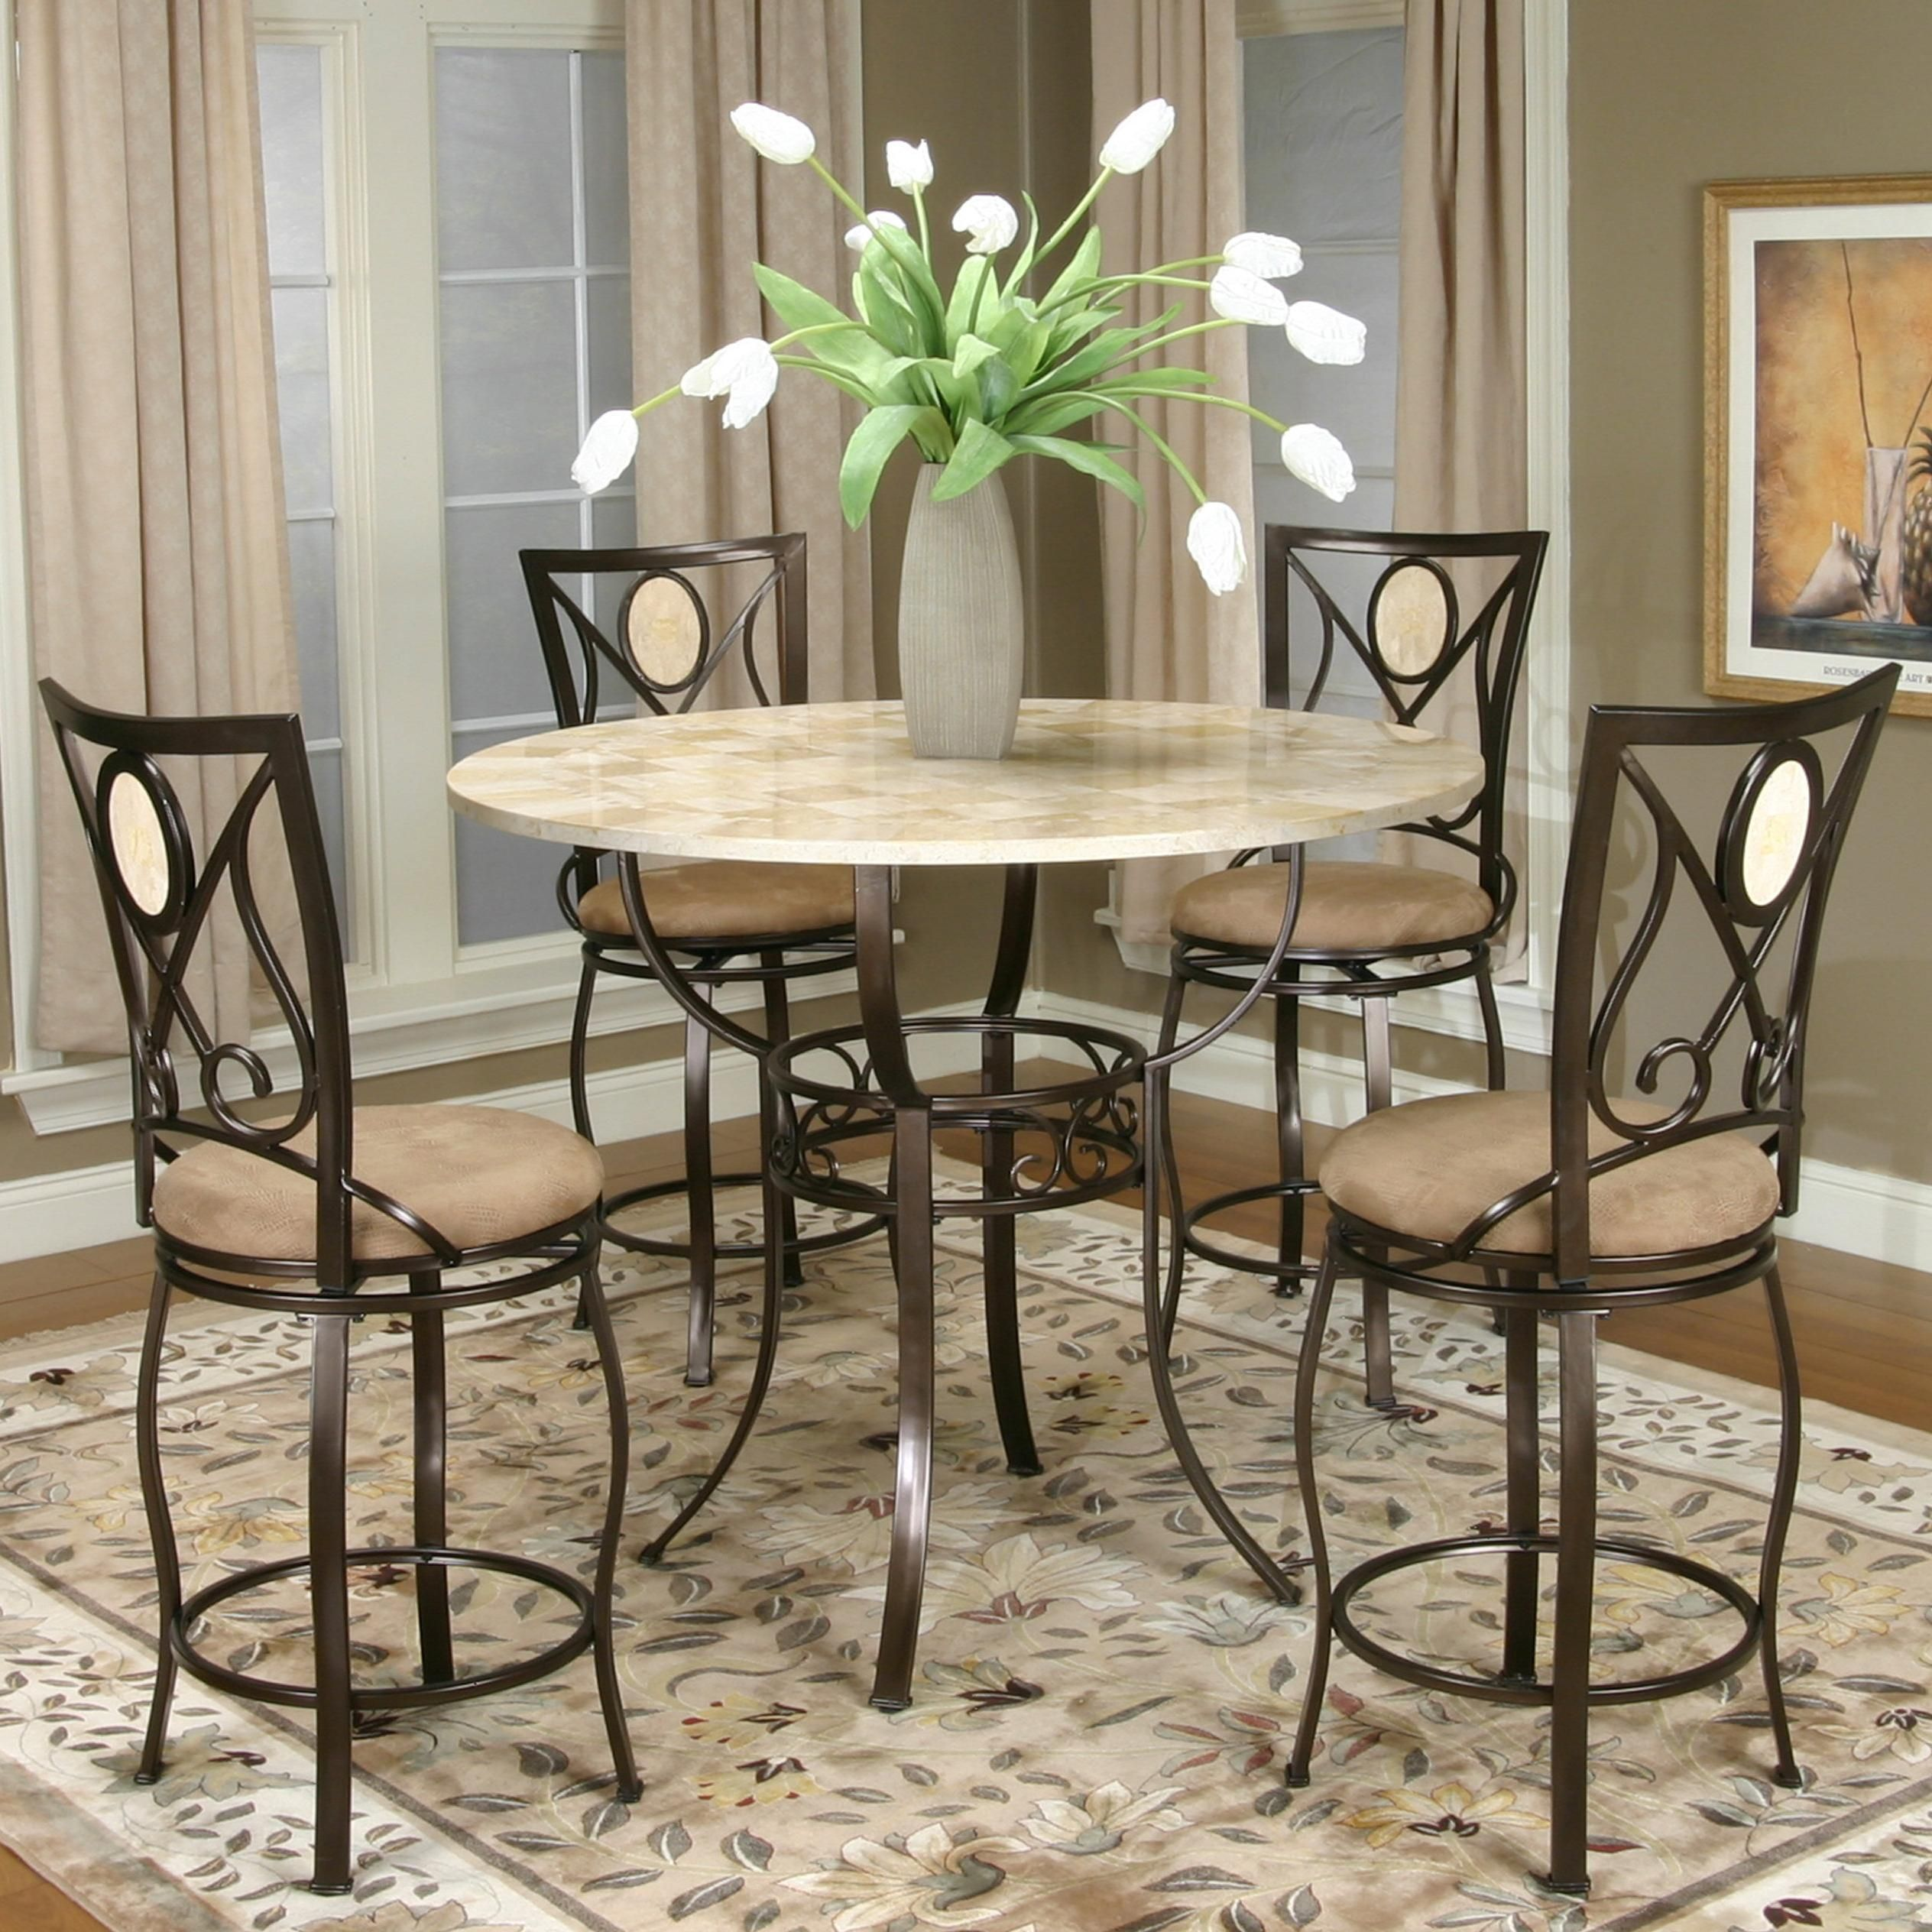 Cramco Trading Company Nadia Five Piece Pub Table Set By